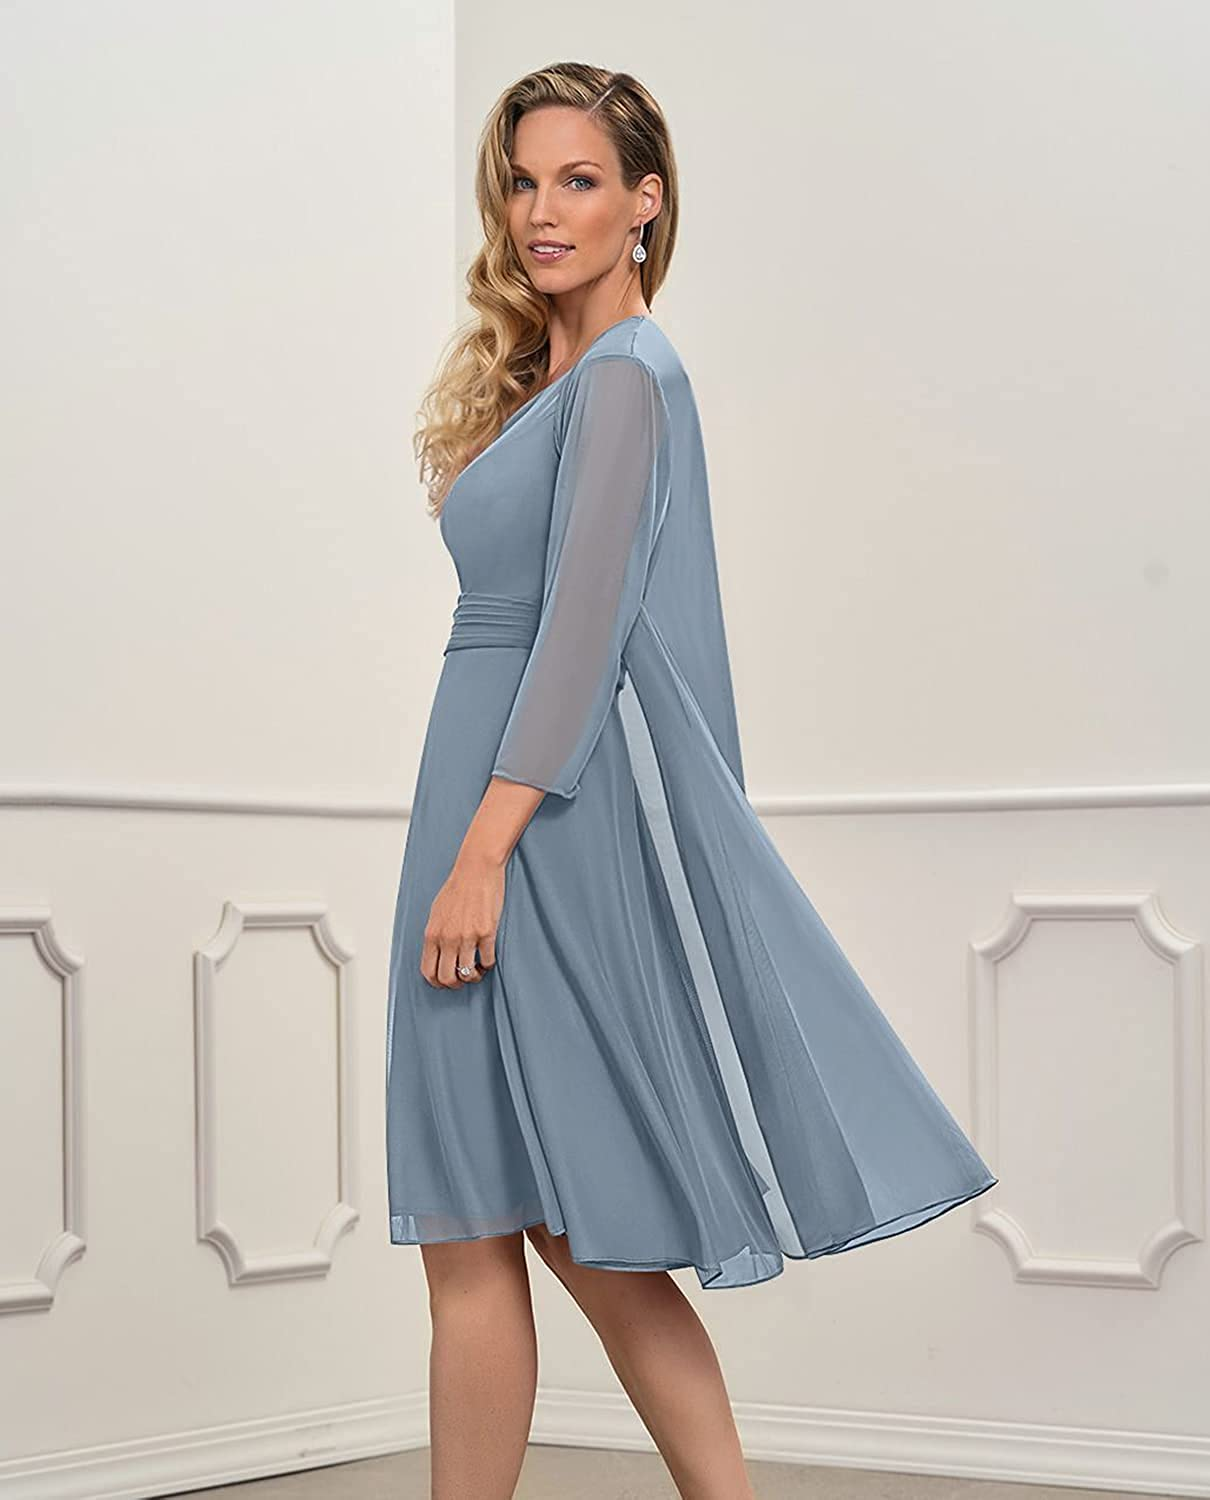 Women's Chiffon Short Mother of The Bride Dress with Jacket Sleeves Knee Length Formal Evening Gown